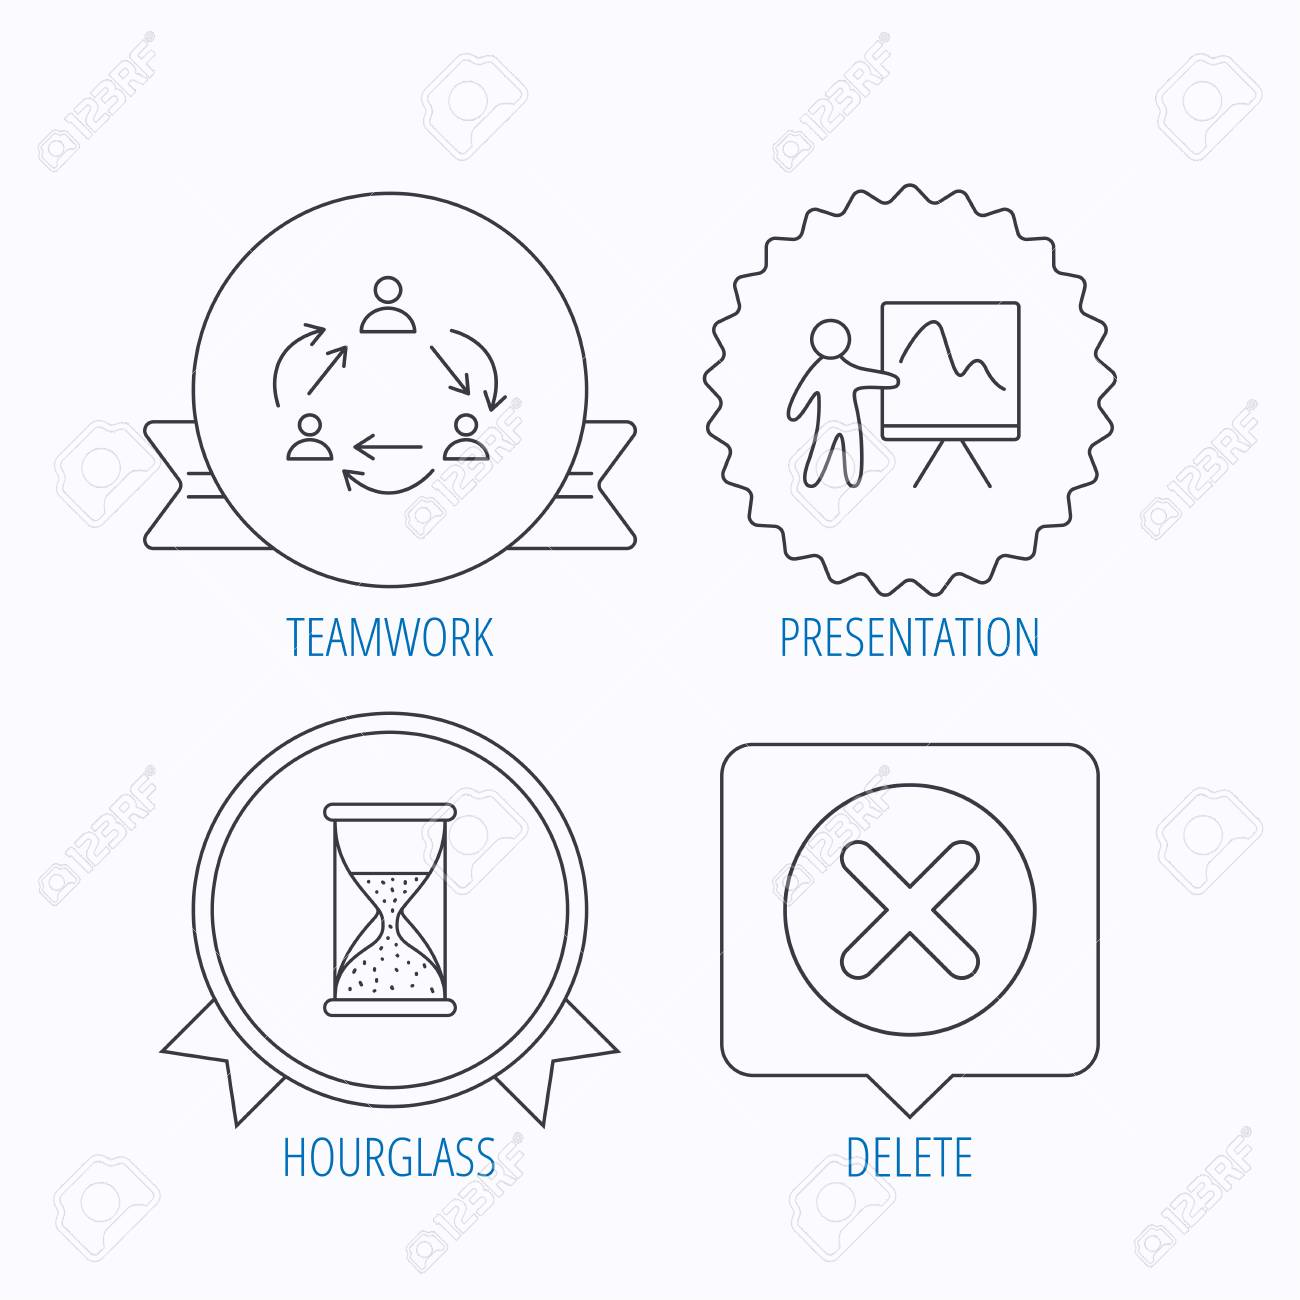 teamwork presentation and hourglass icons delete or remove